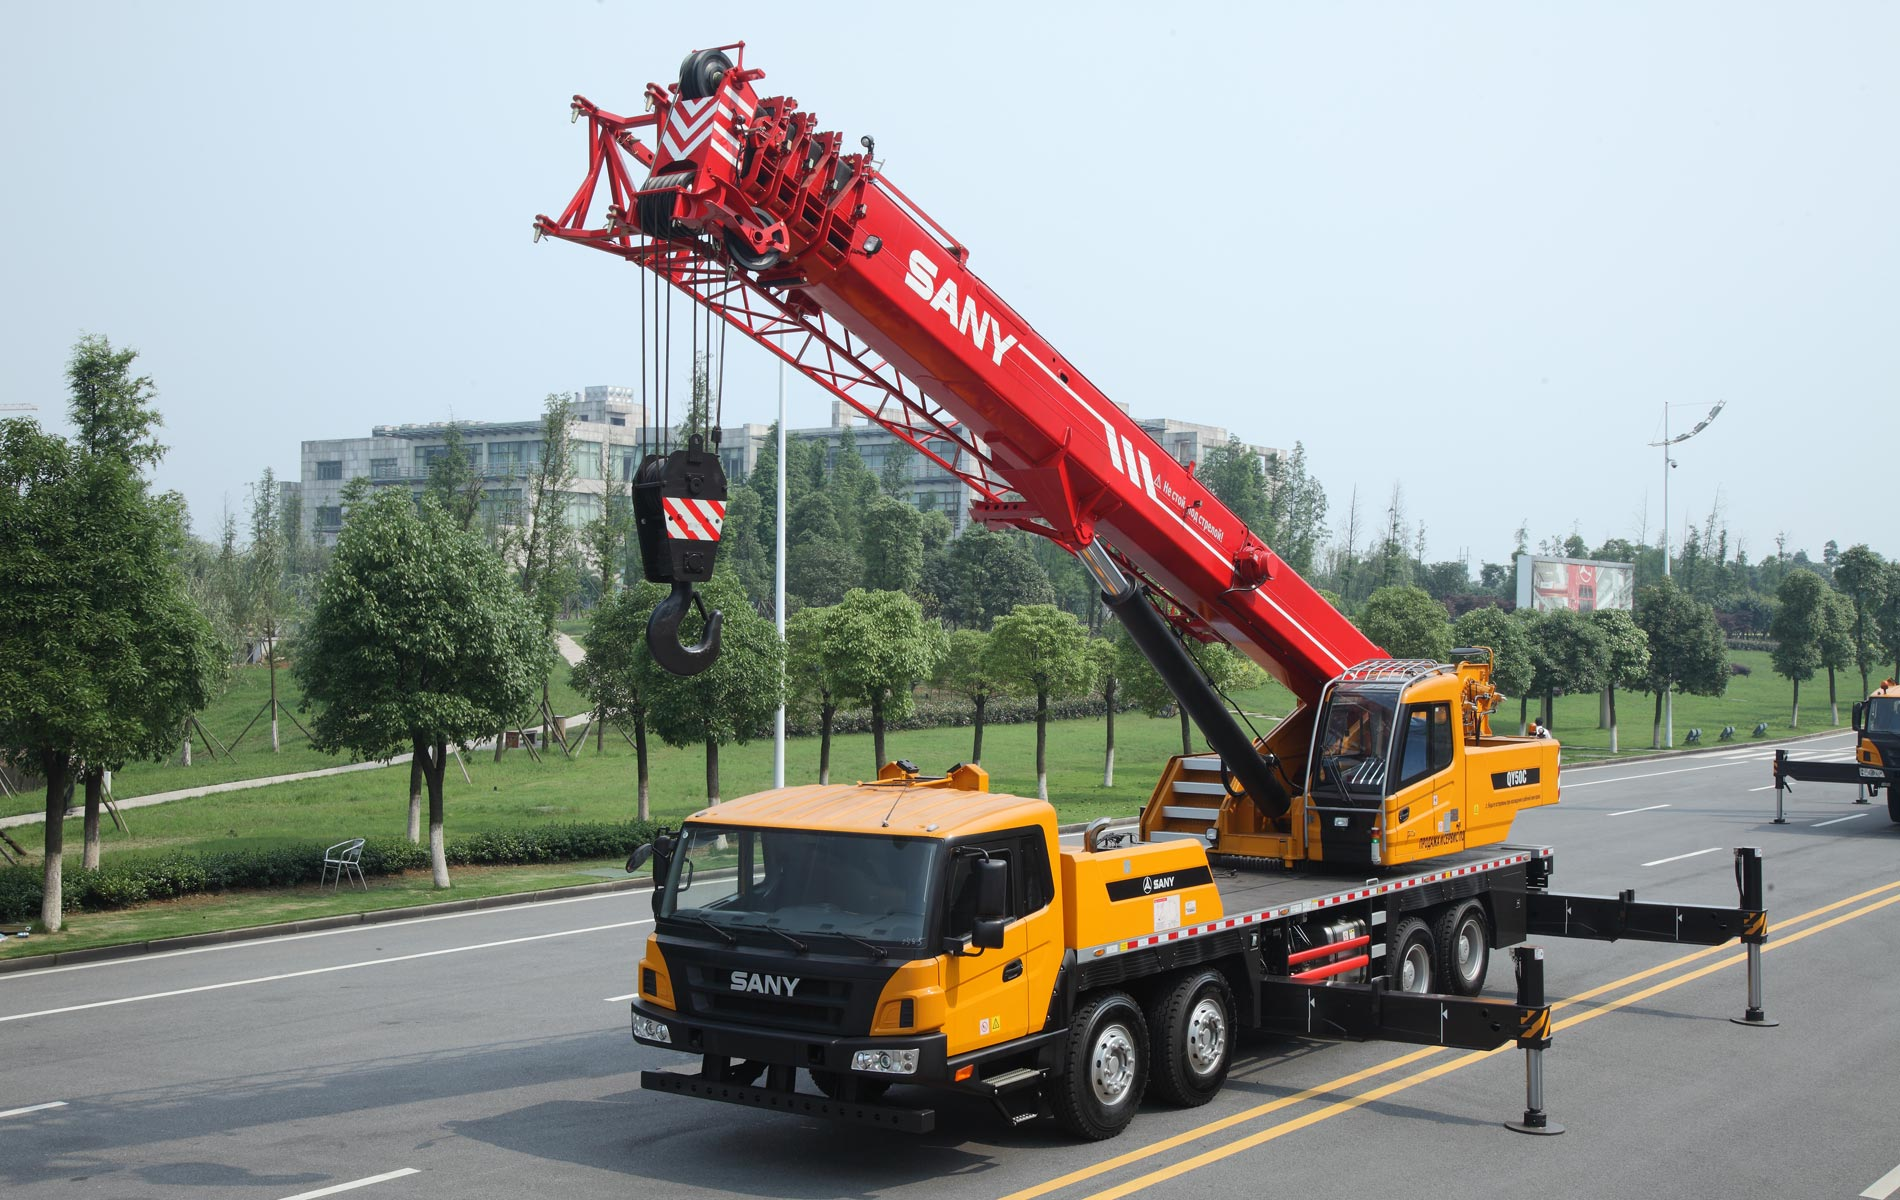 Application of Mobile Crane in Construction Project